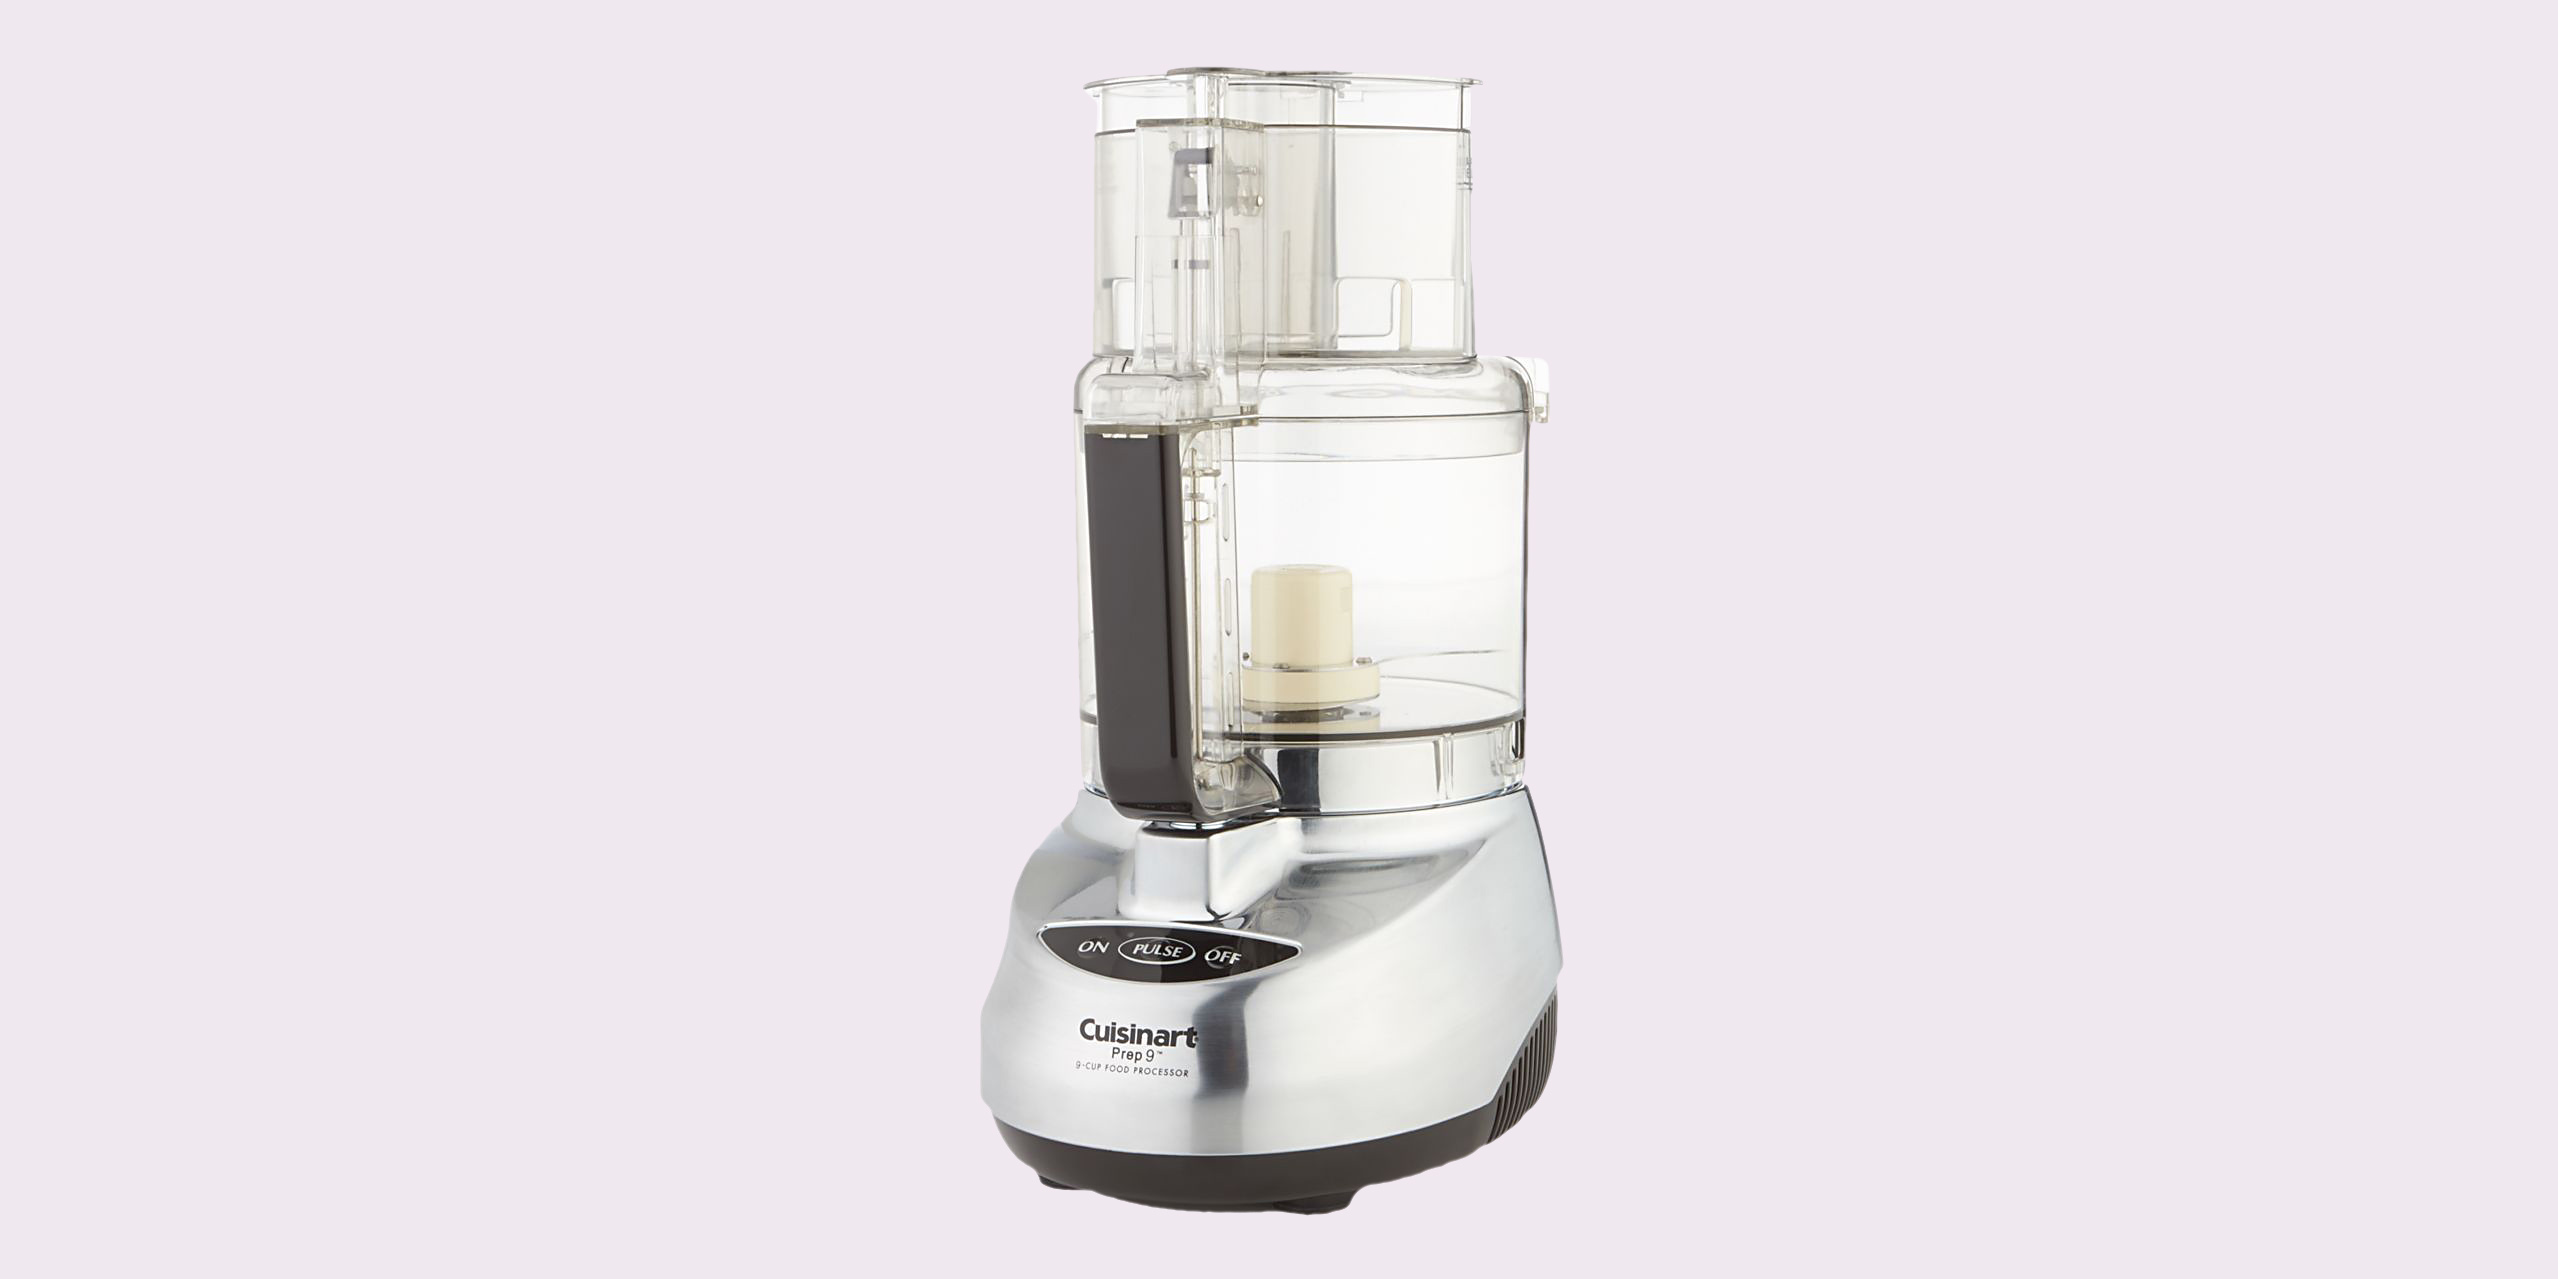 stainless steel Cuisinart 9-Cup Food Processor